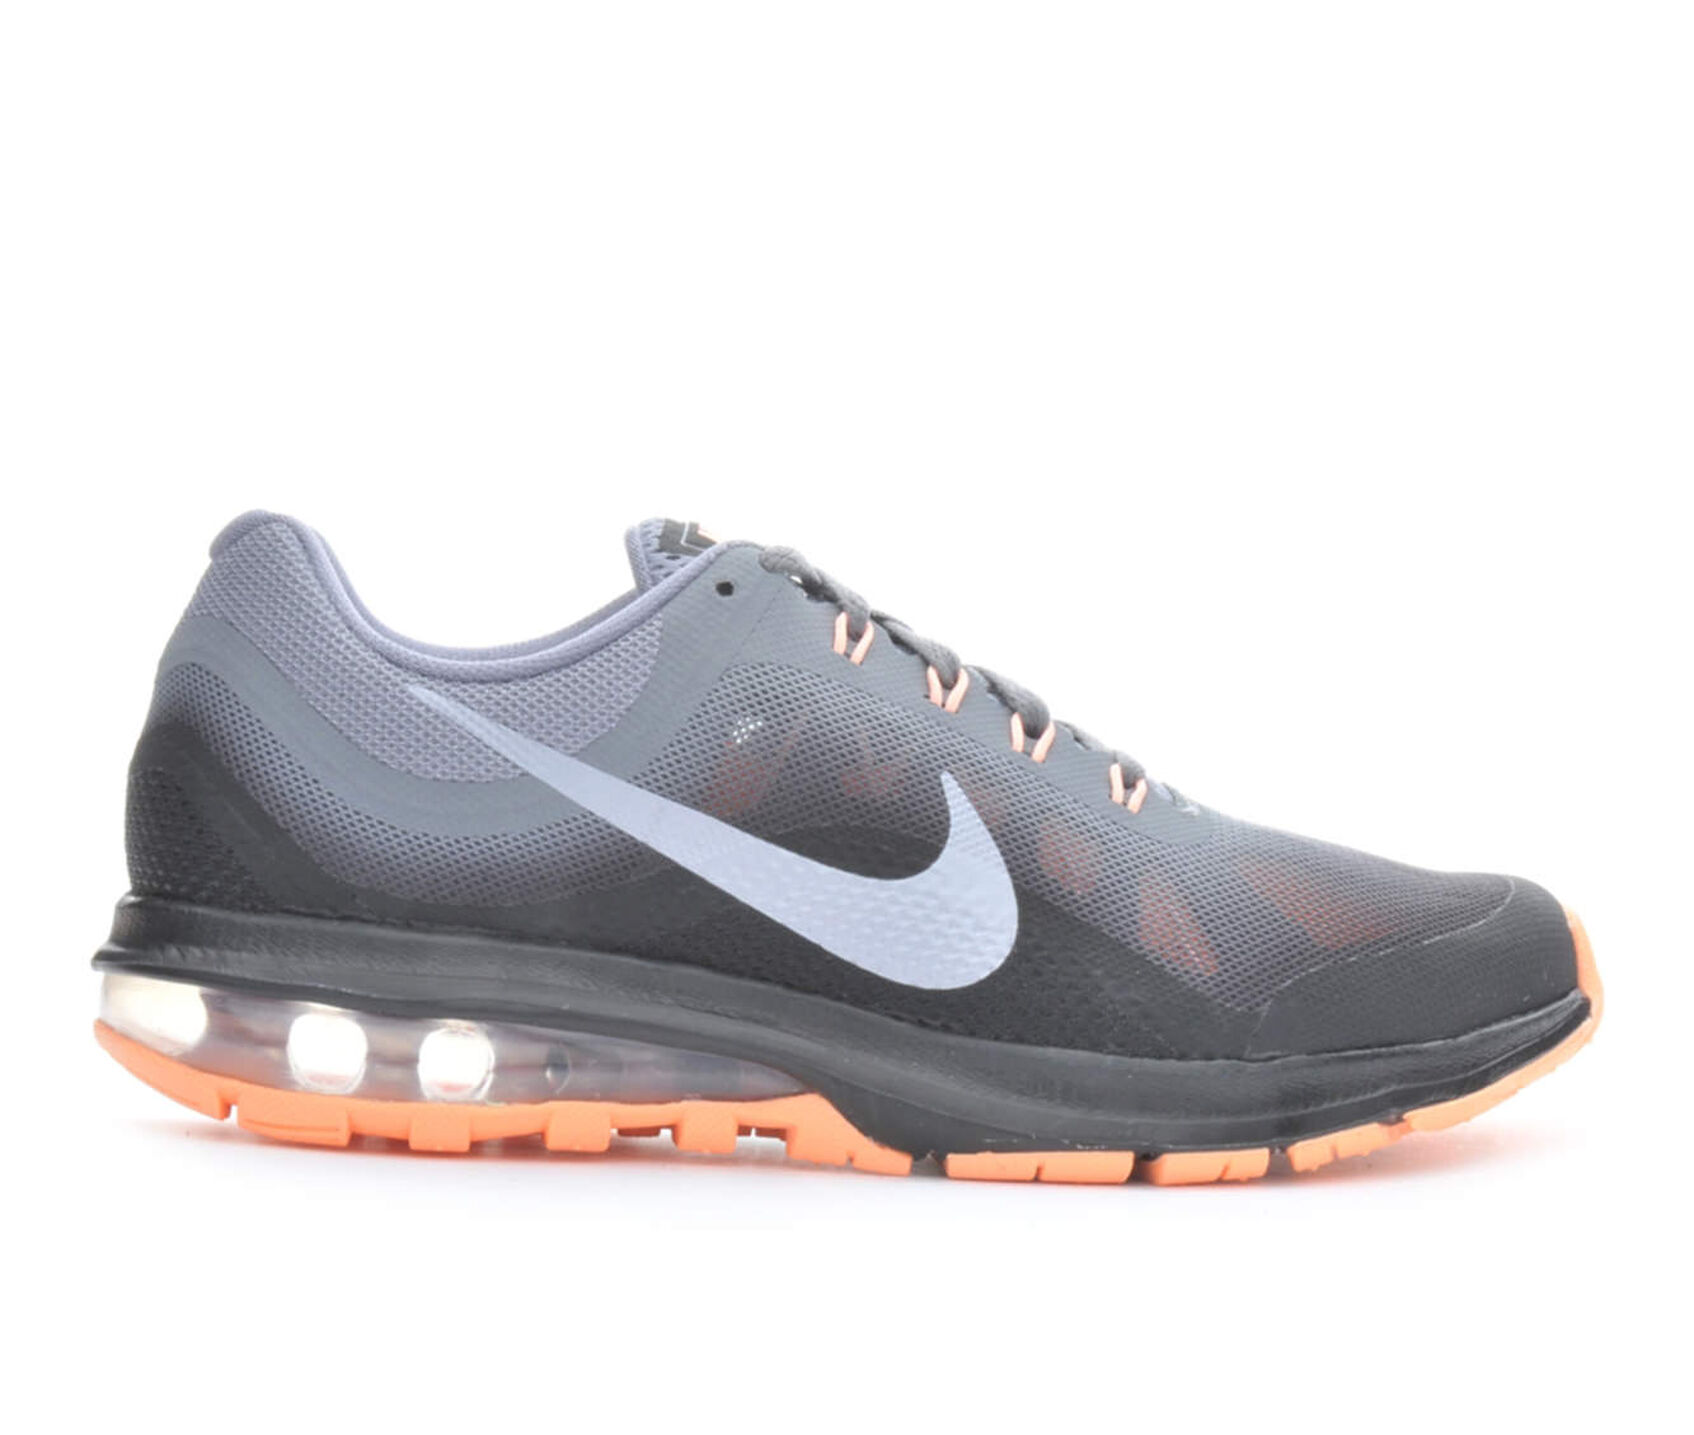 Are Nike Air Max Dynasty Running Shoes